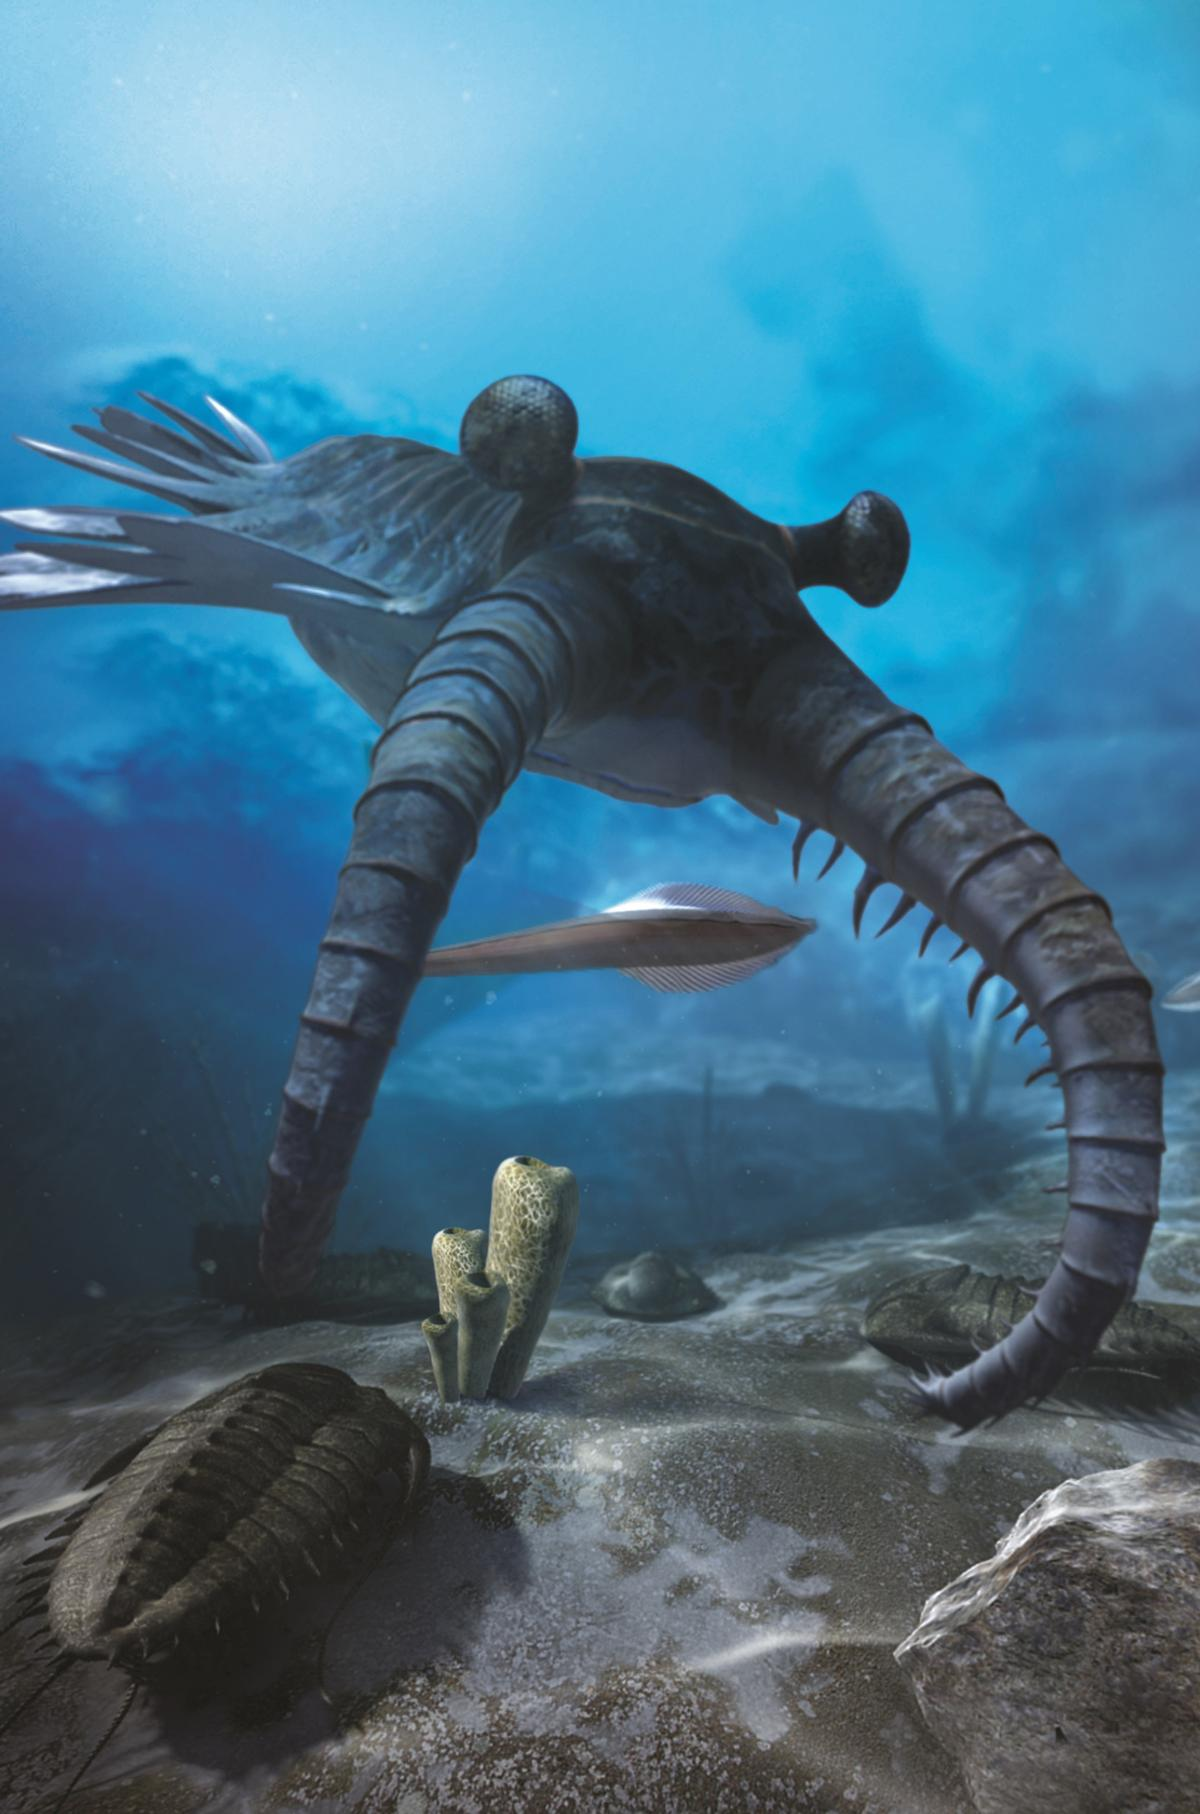 David Attenborough's First Life brings to life the dawn of living creatures on Earth from 540 million years ago